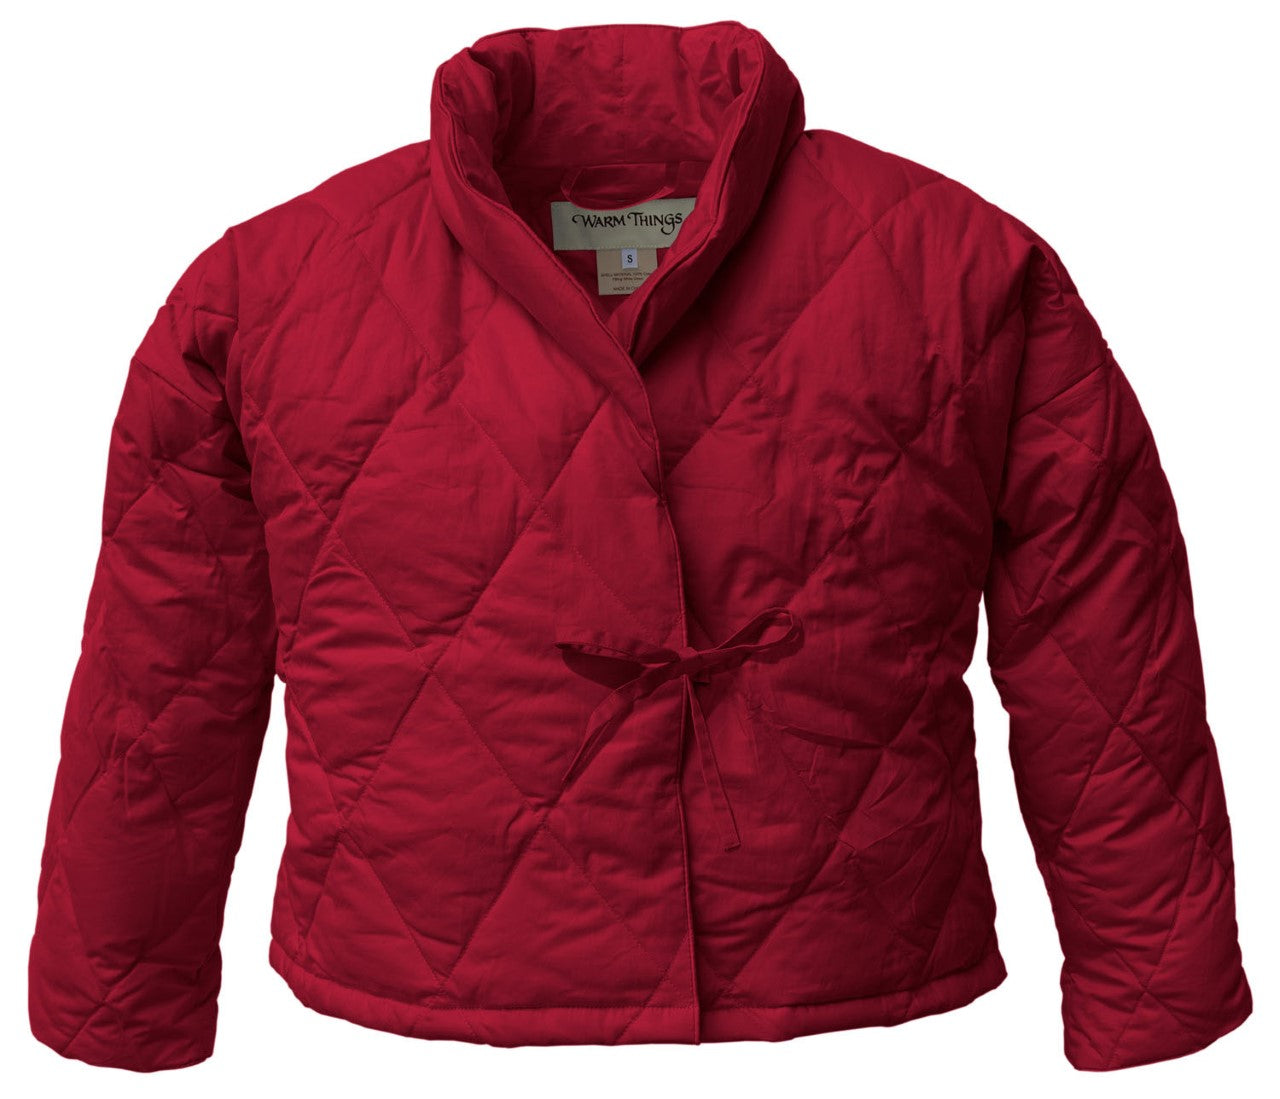 Warm Things Quilted Down Bed Jacket